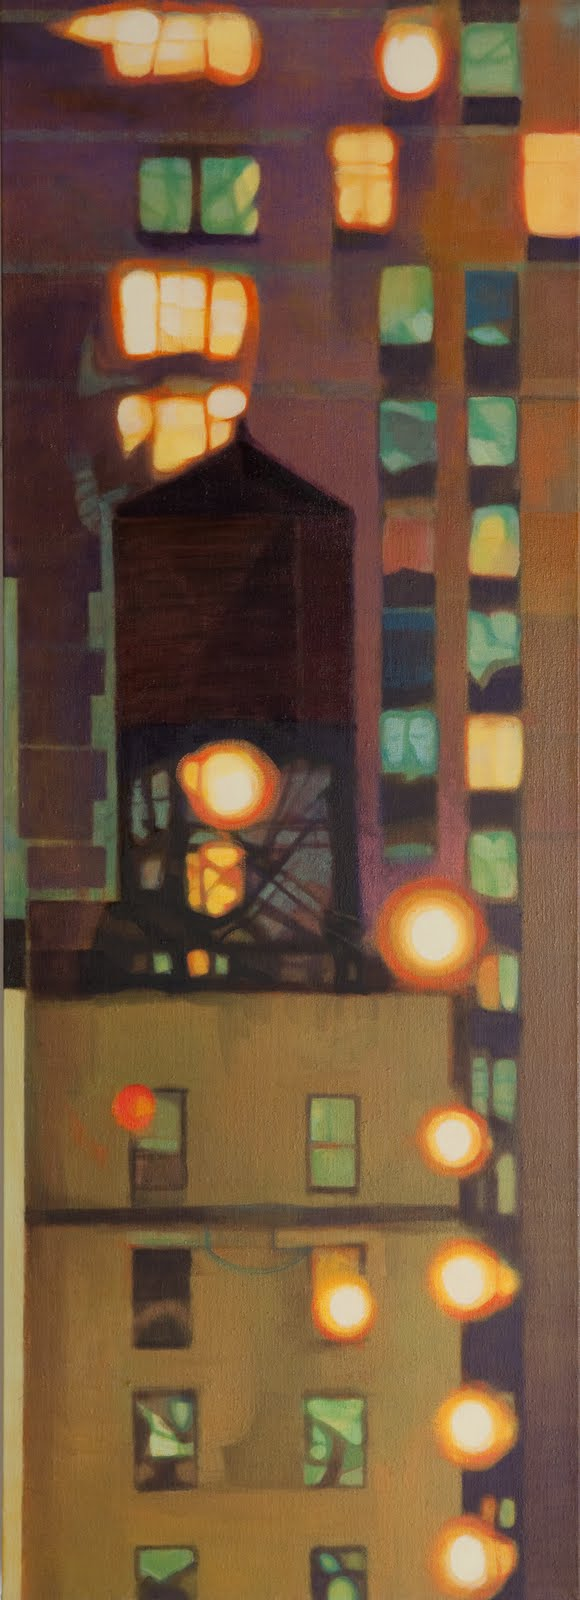 """Watertower Glow"", oil on linen, 50 x 20 x 2.5 in."